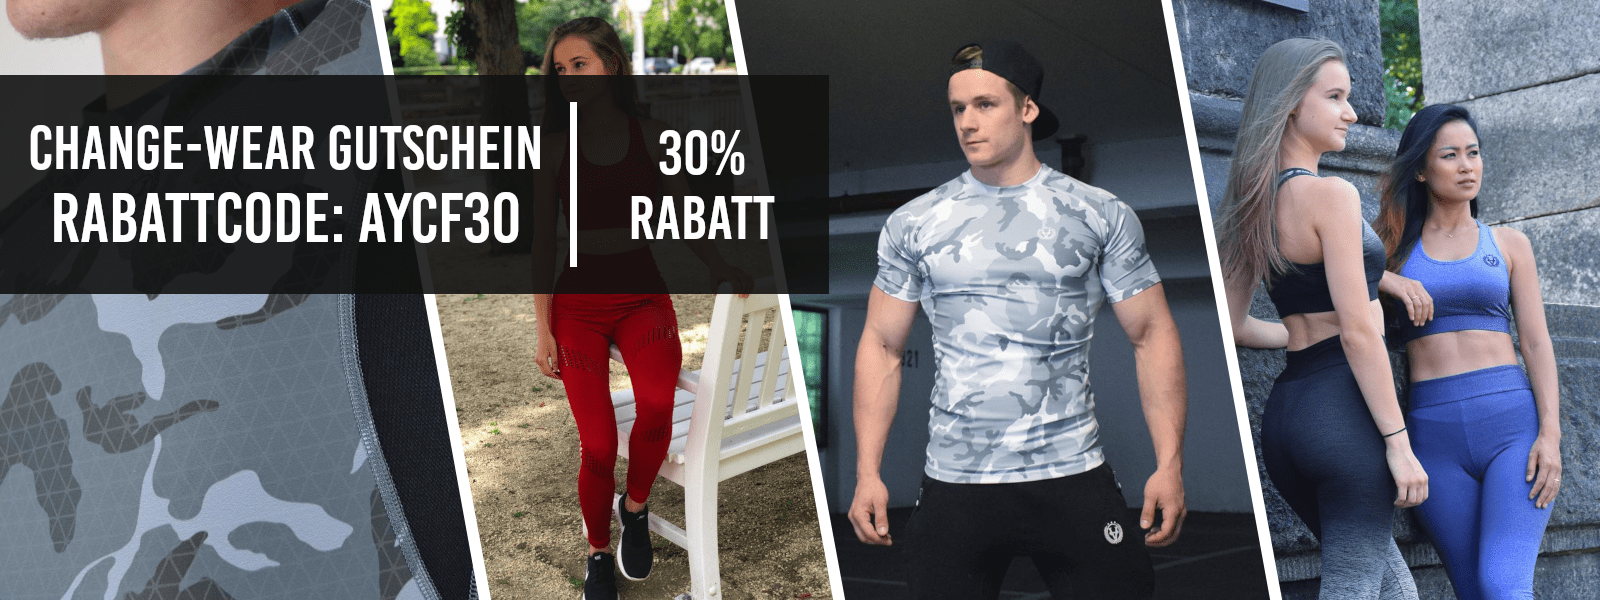 Change Wear Gutschein - 30% Rabatt